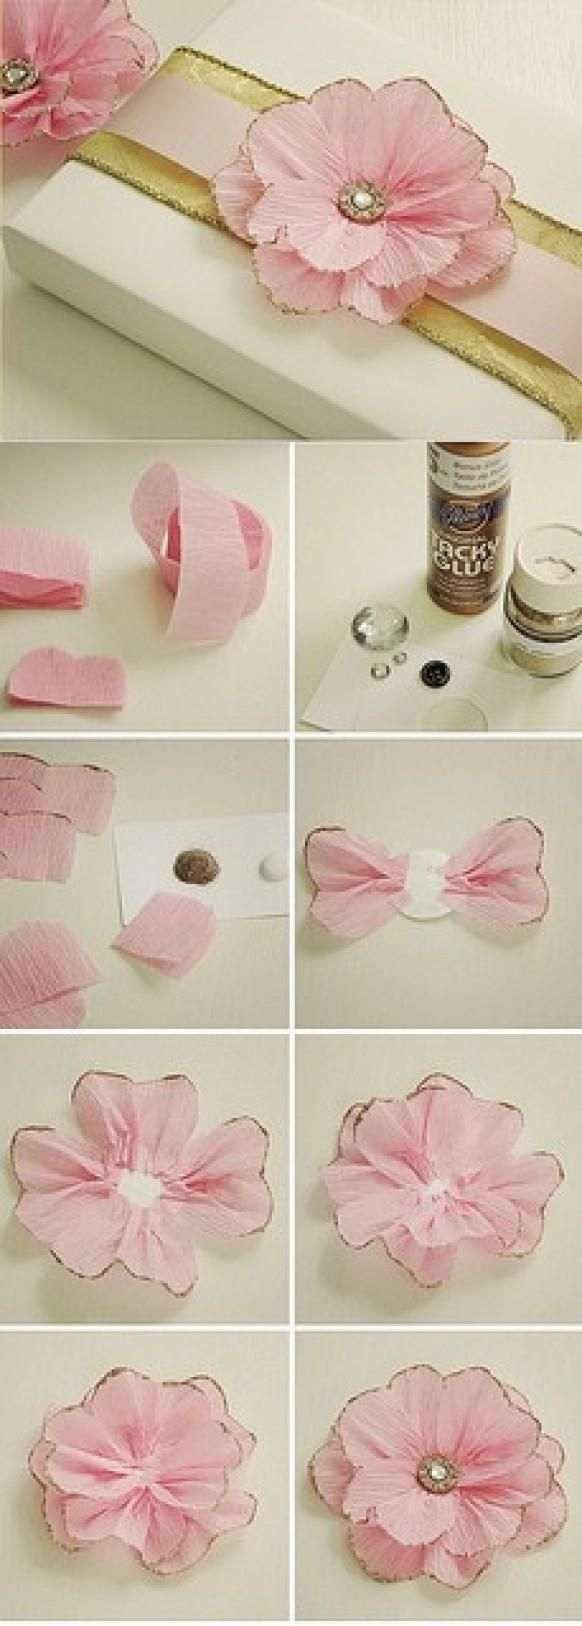 Crafts - Weddbook